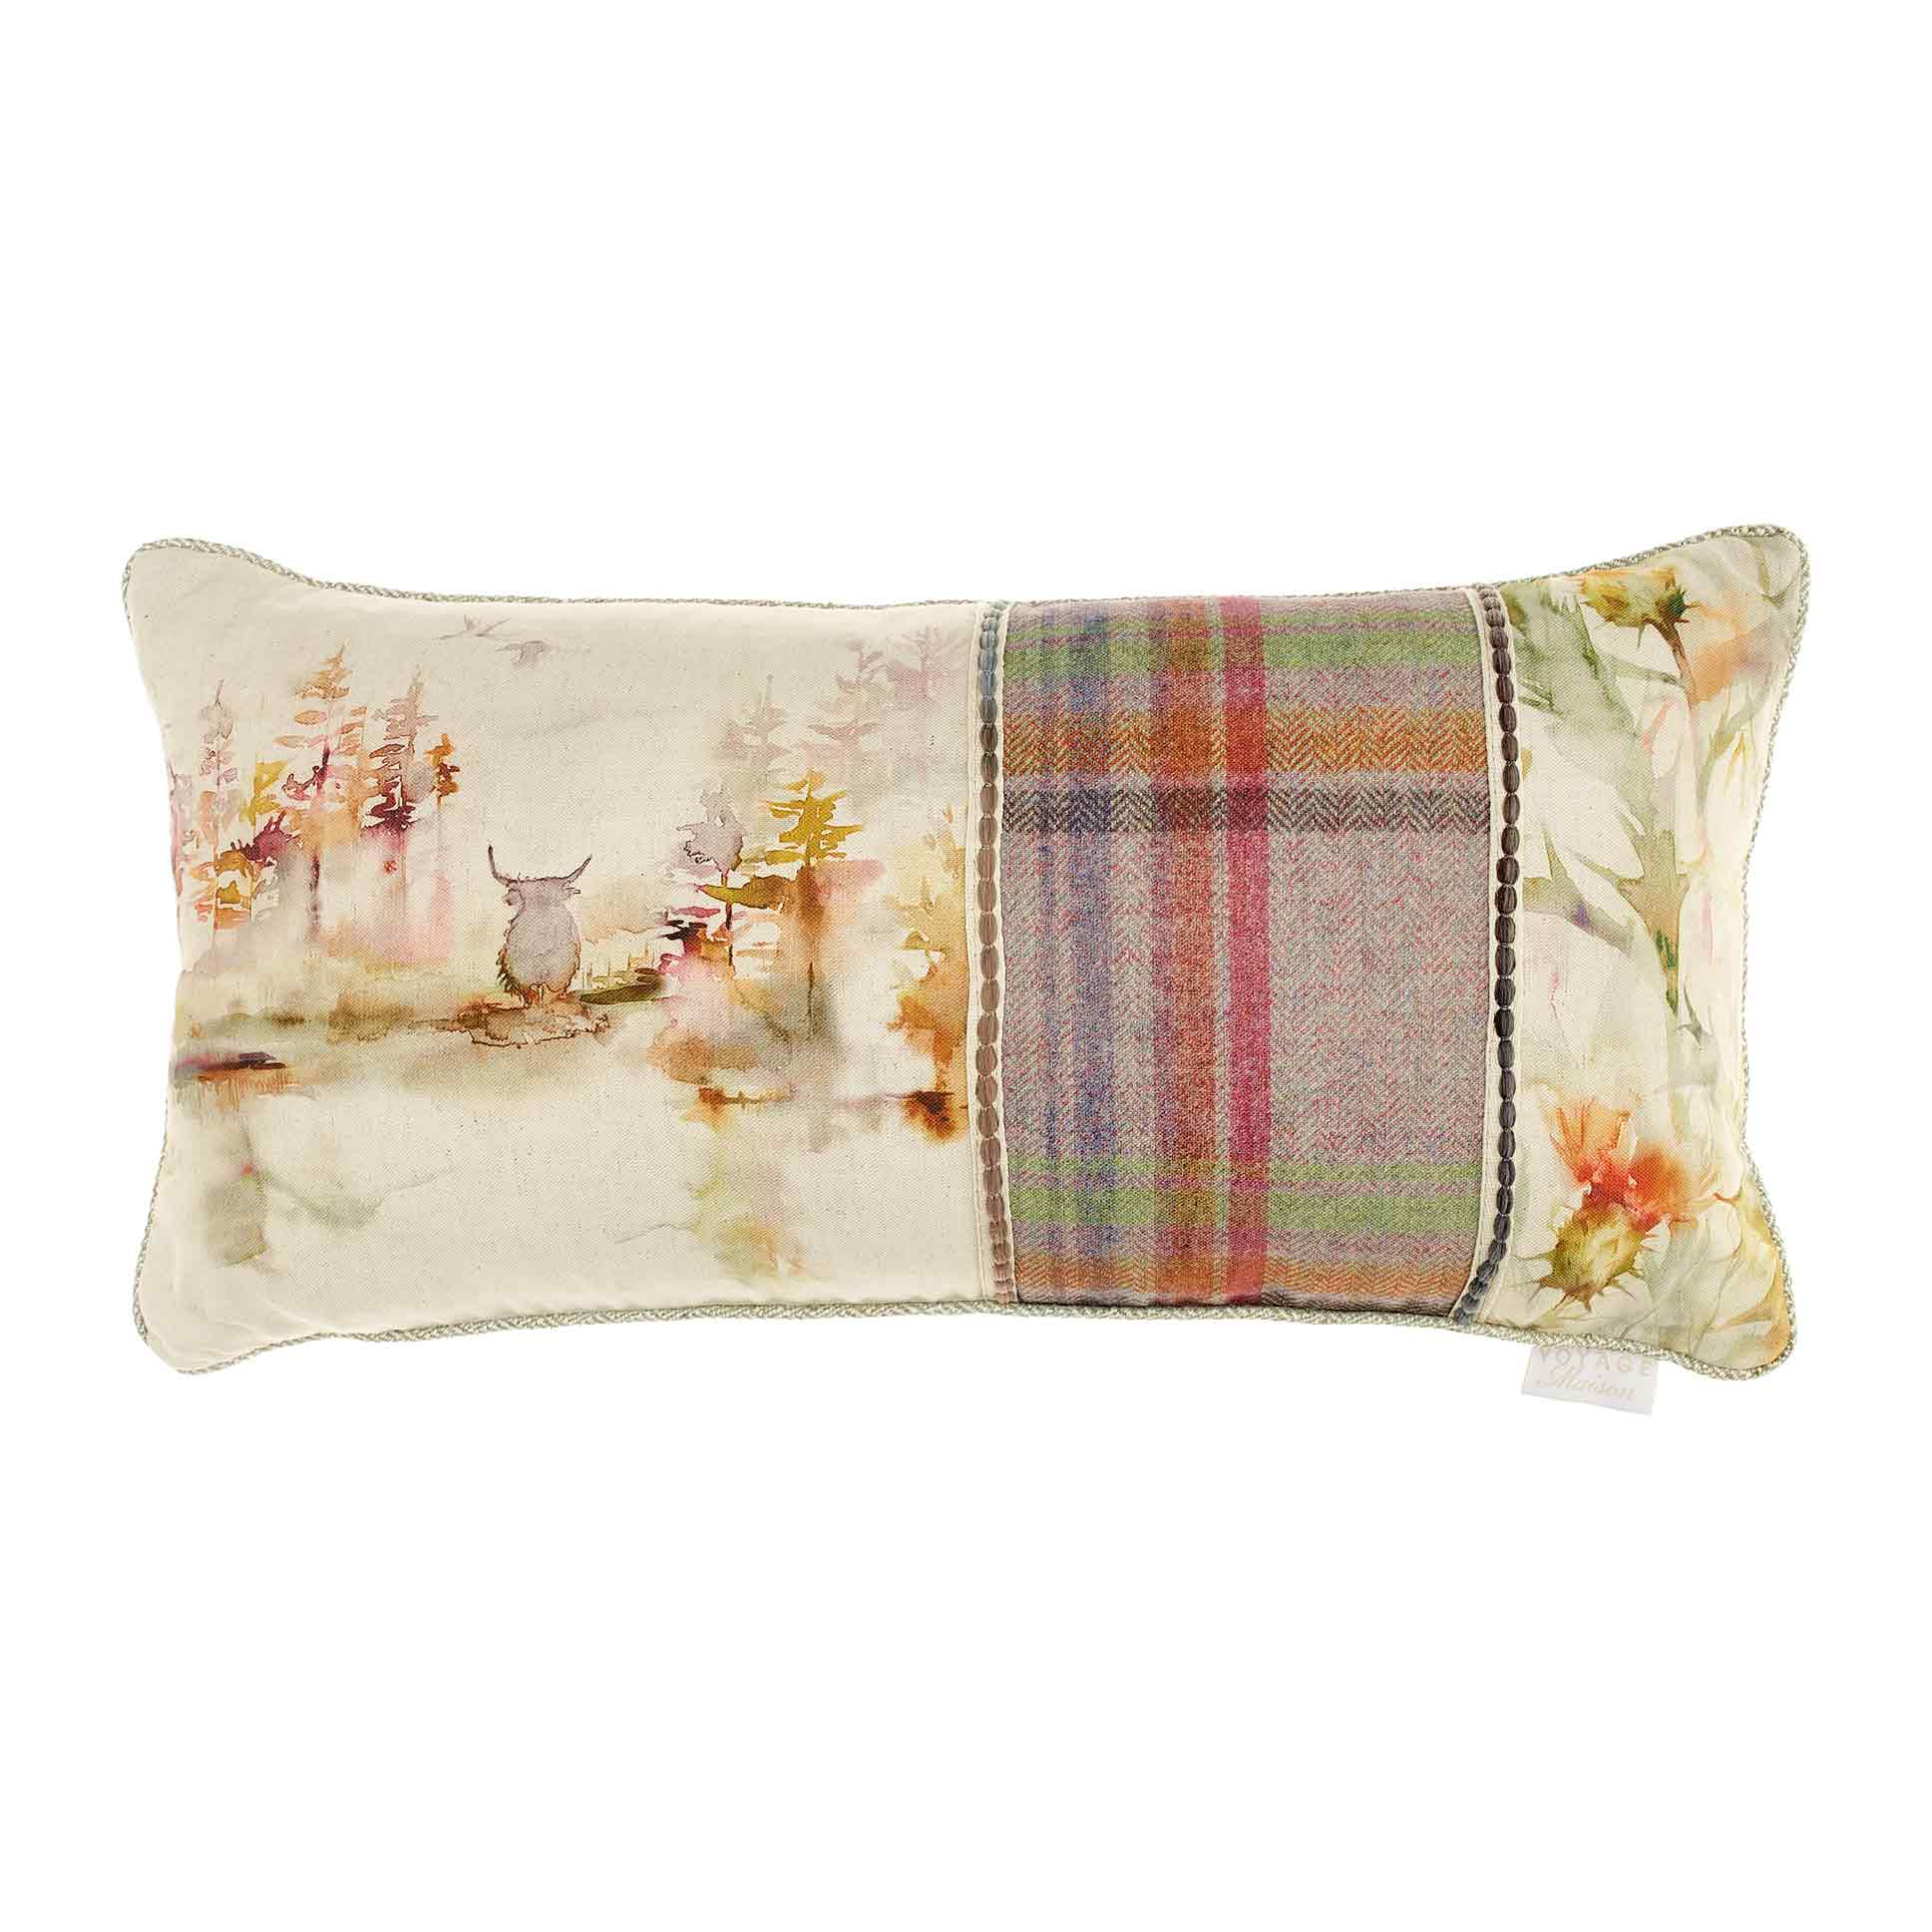 Caledonian Forest Patchwork Linen Cushion 35x70cm